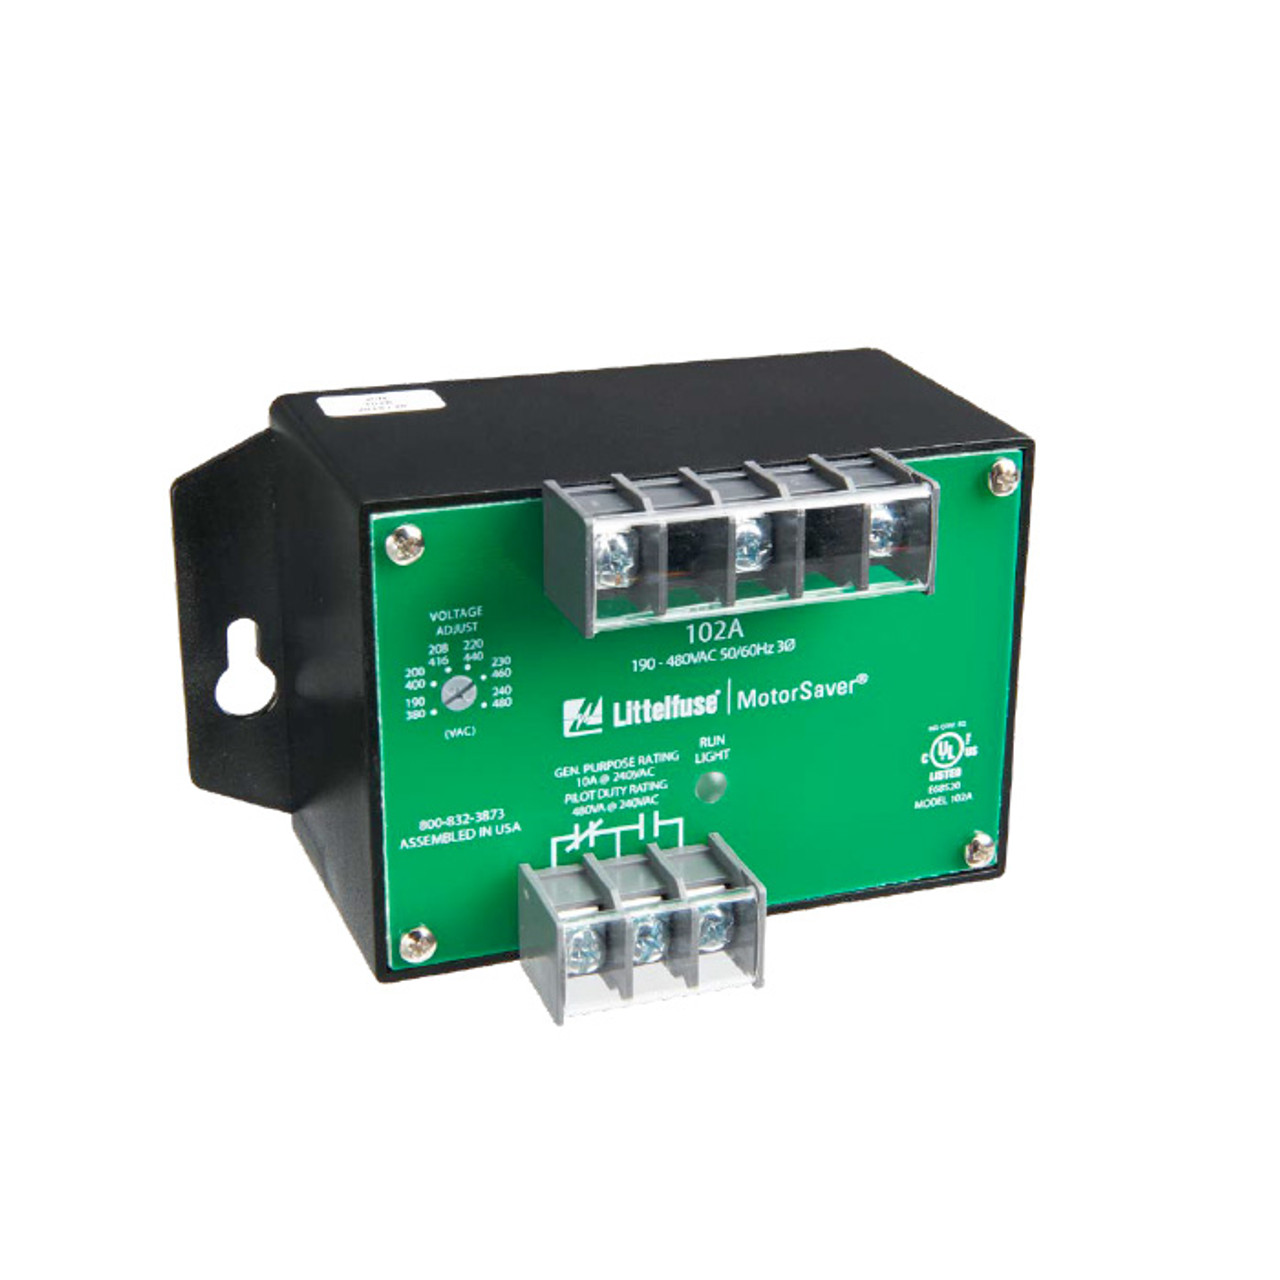 102A2 3-PHASE VOLTAGE MONITOR